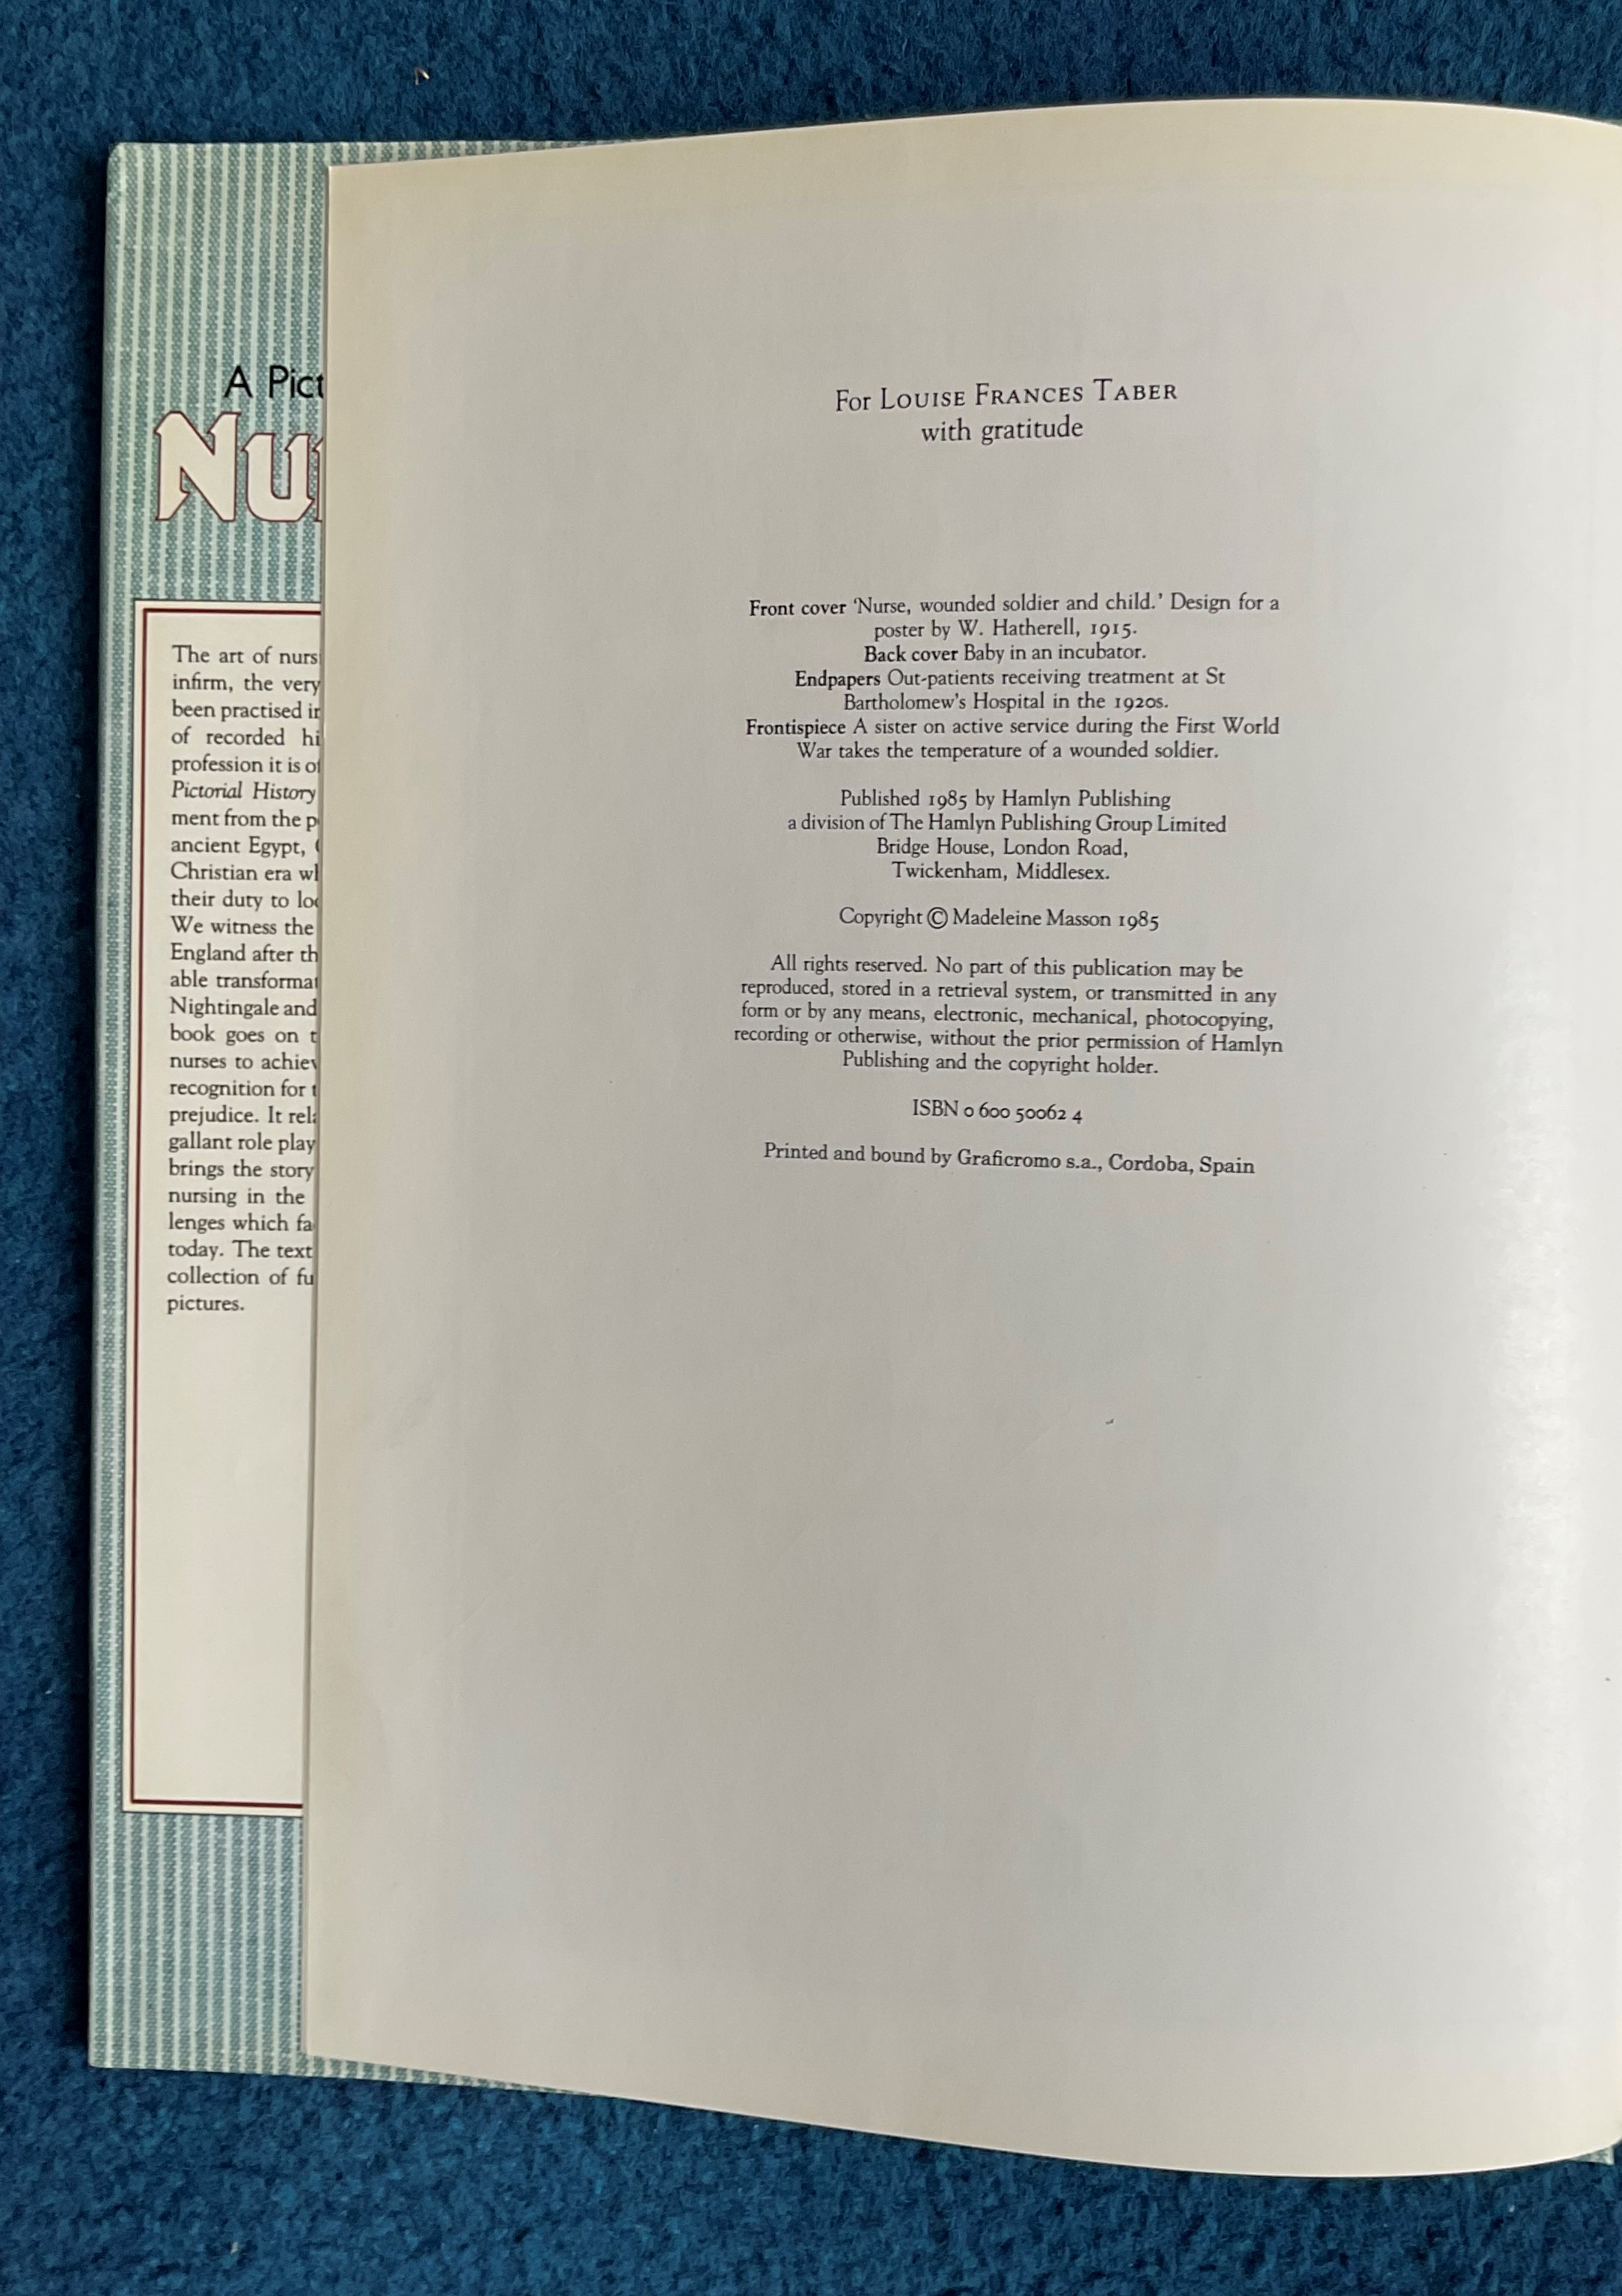 Sir Archibald McIndoe Family Photo Album plus 5 Hardback Books from His personal collection - Image 19 of 23